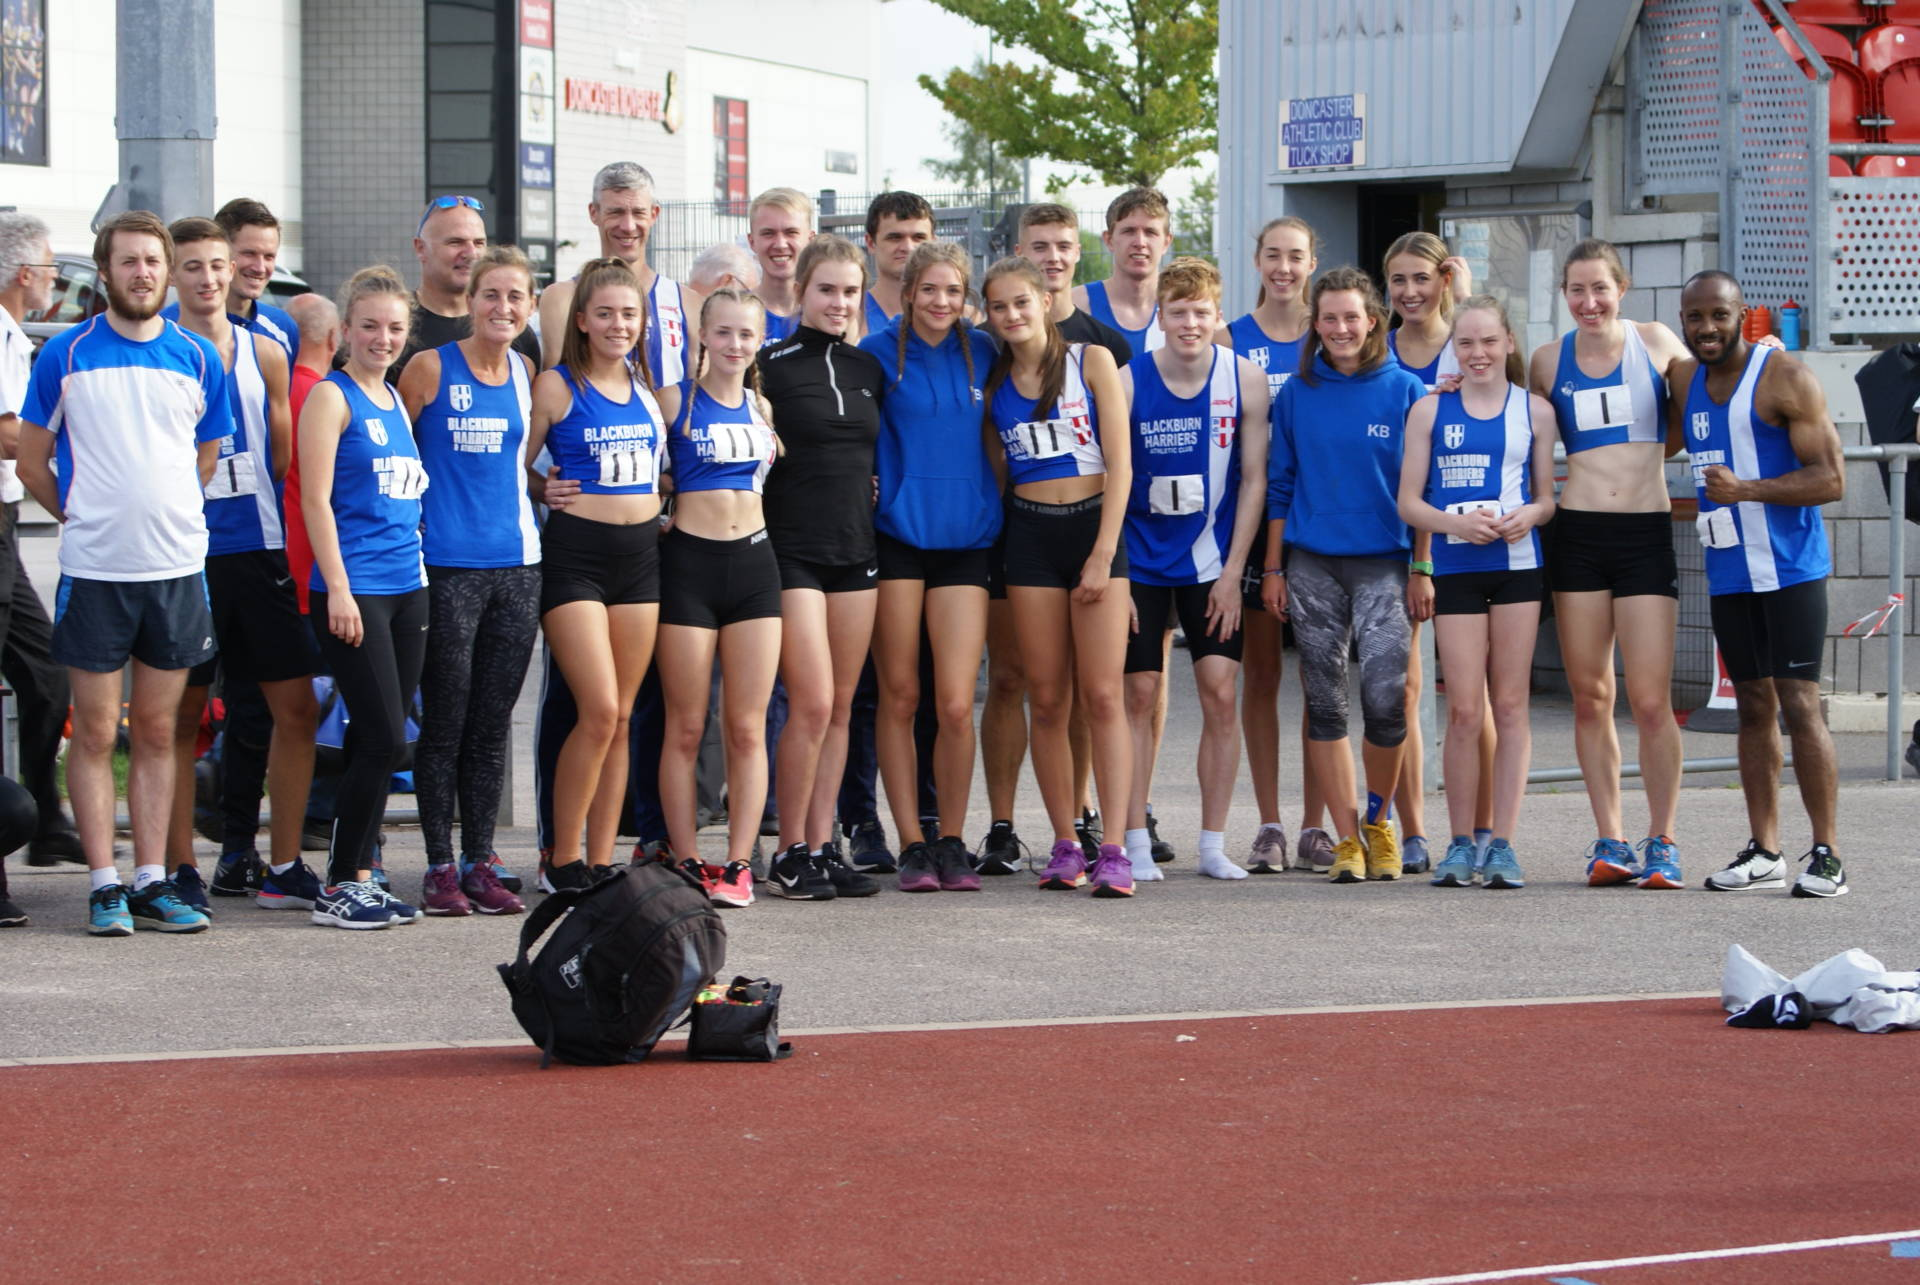 Harriers Senior Team Win Promotion to Division One in Northern League – Jess Wins Home Countries International 1500m and BMC 3000m – Rob Runs seasons best 800m at Tipton BMC – Thomas Runs Junior International Fell Trials at Arncliffe – Gary & Ian at Pendle Three Peaks